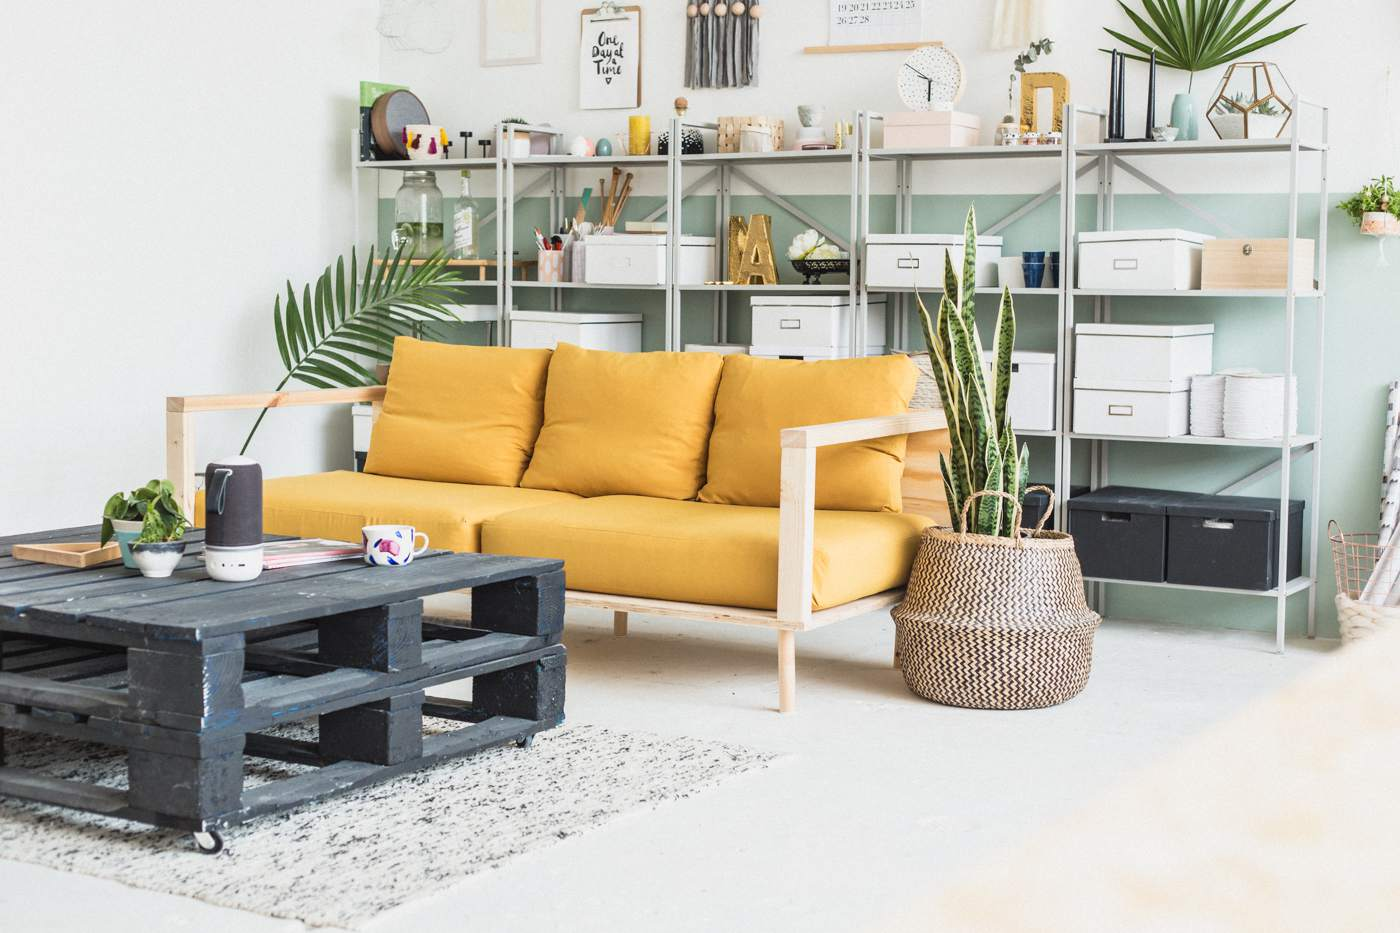 9 DIY Ideas for the Living Room